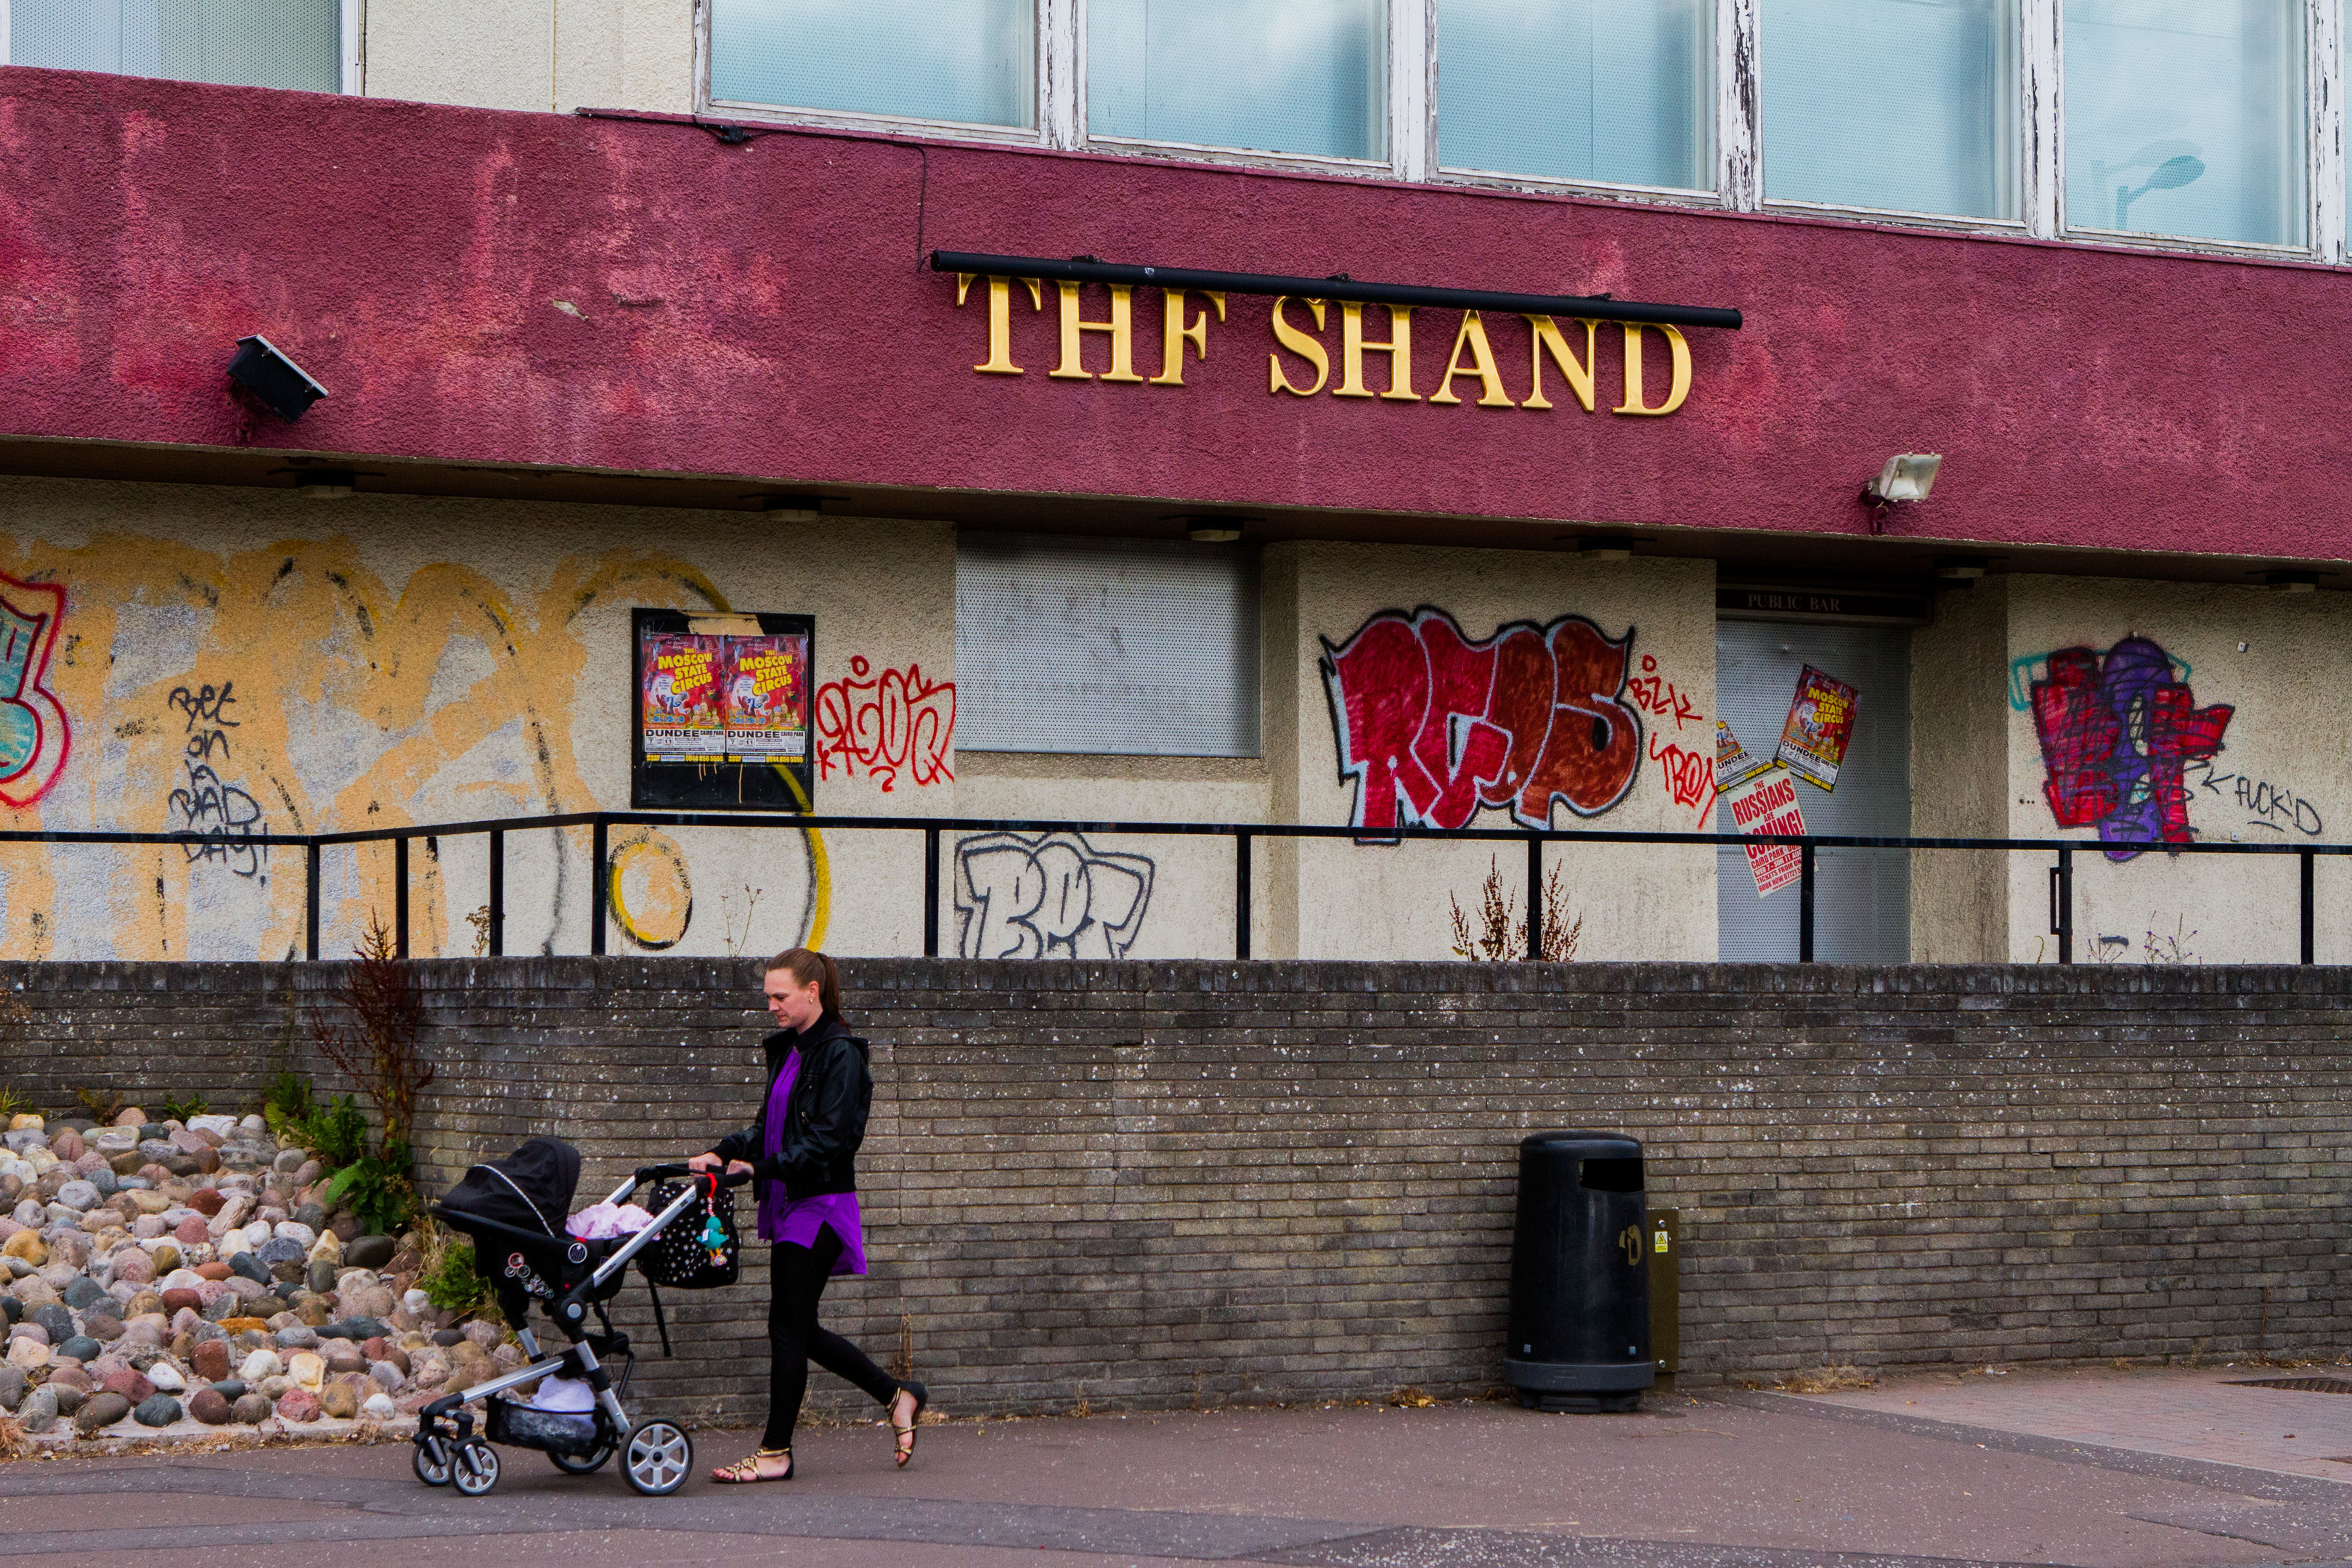 The Shand has often been targeted by vandals.